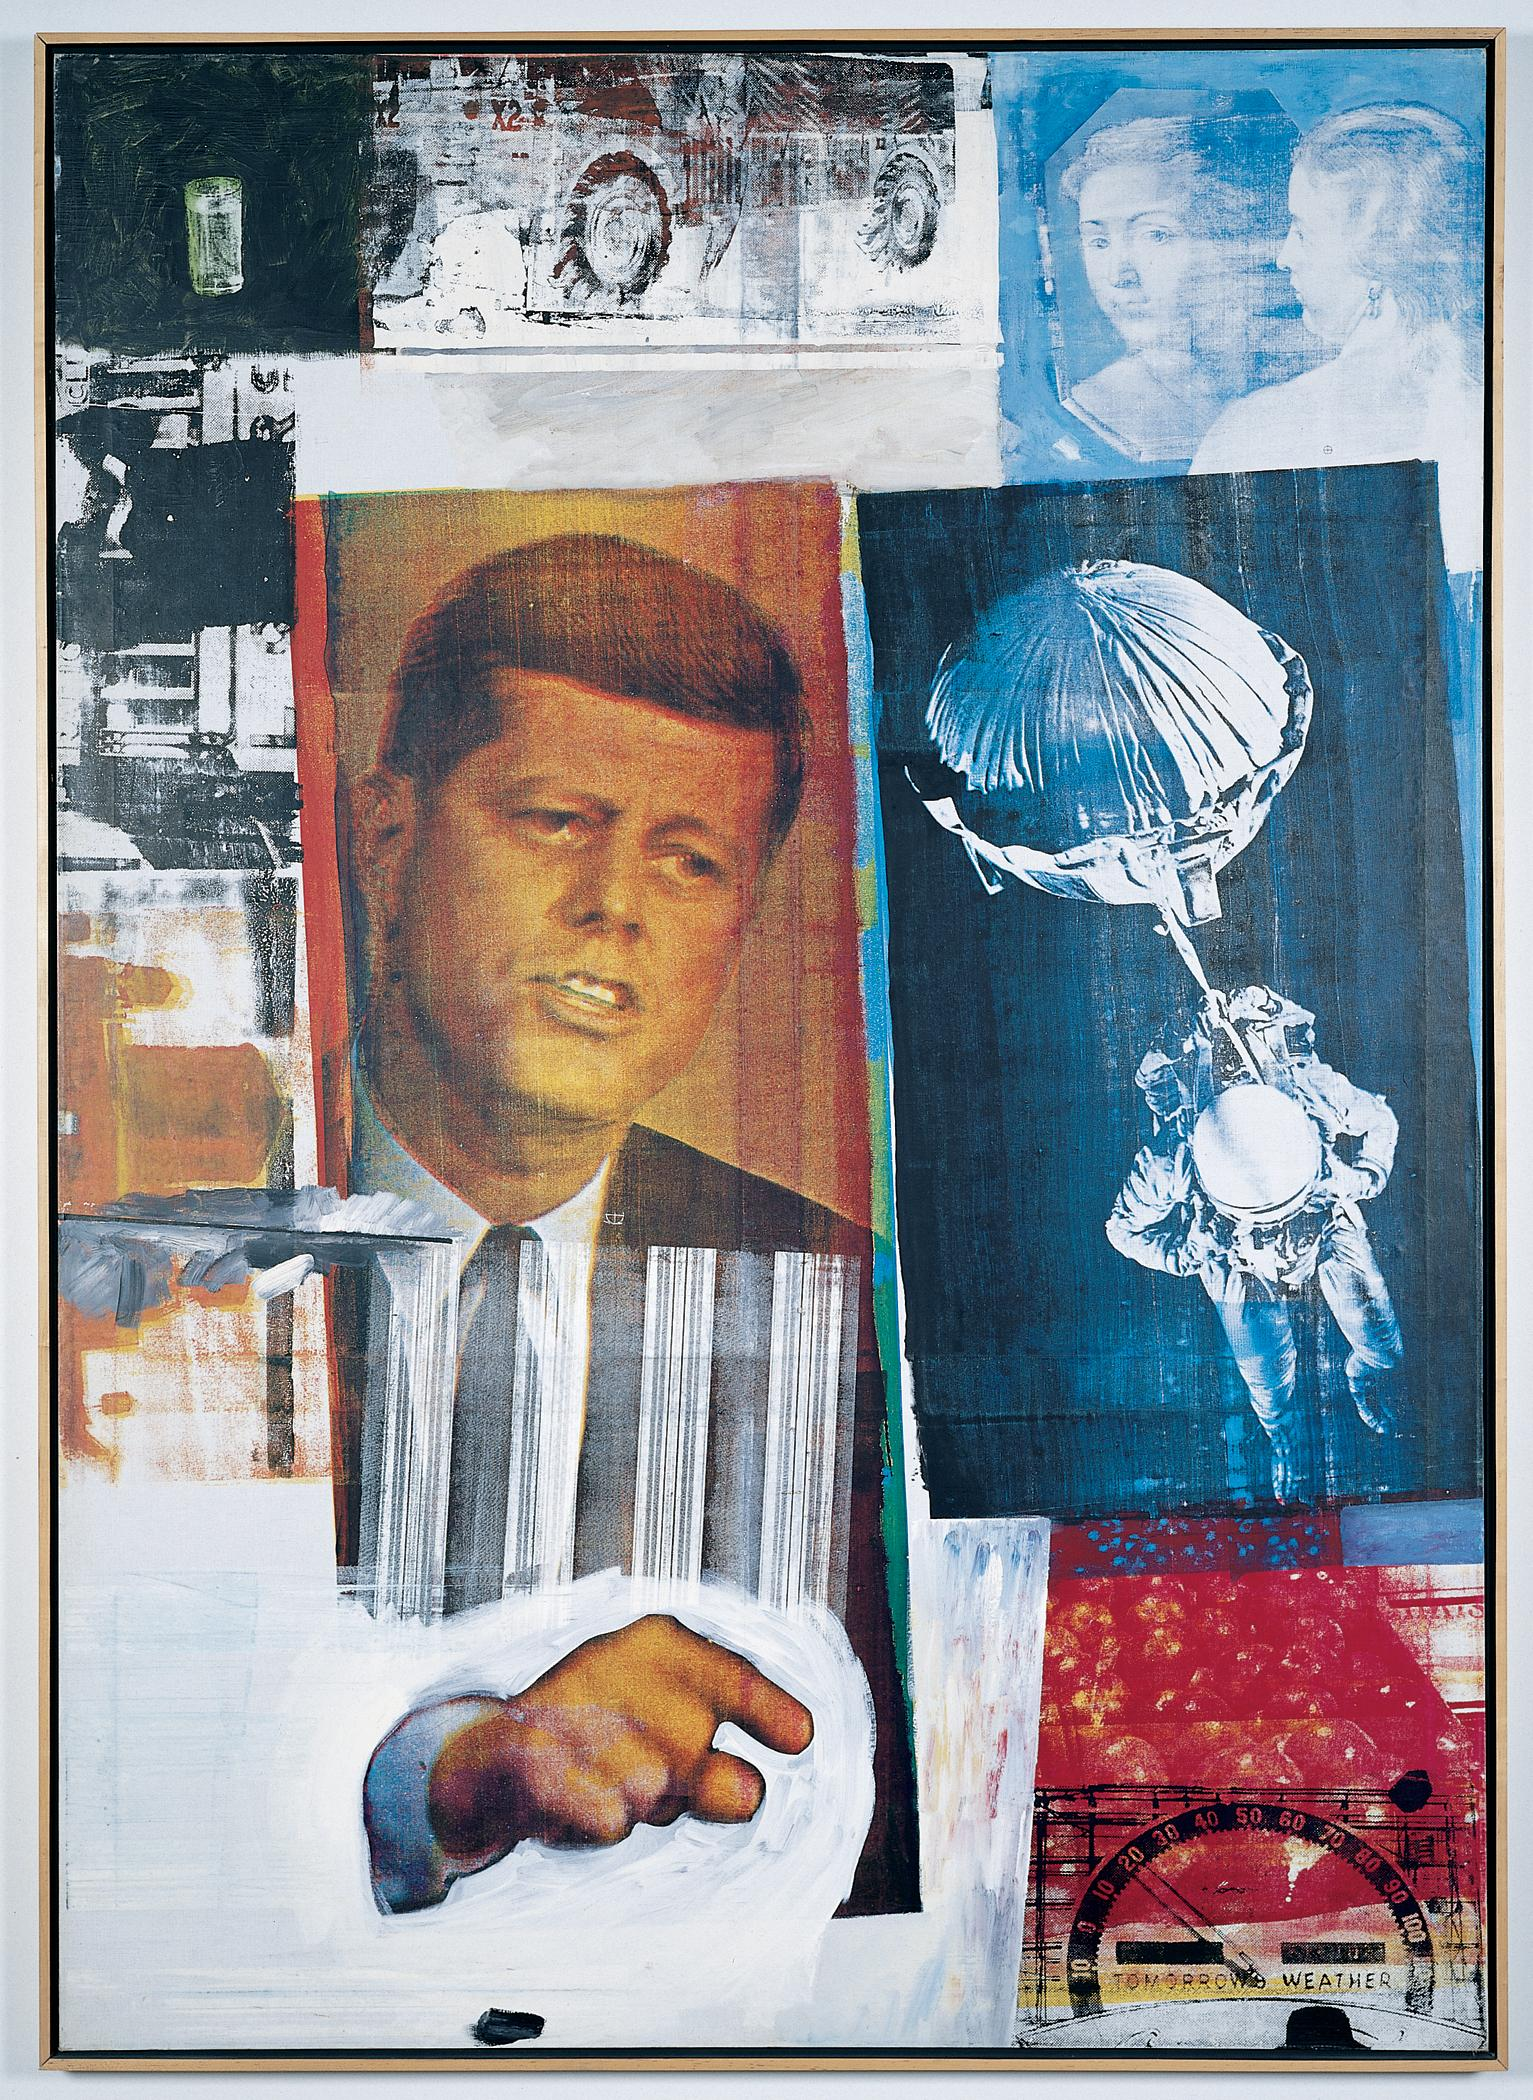 An image of John F Kennedy, painted in orange colors, points to the right toward a blue image of a person in a space suit with a ball-shaped object strapped to their back.